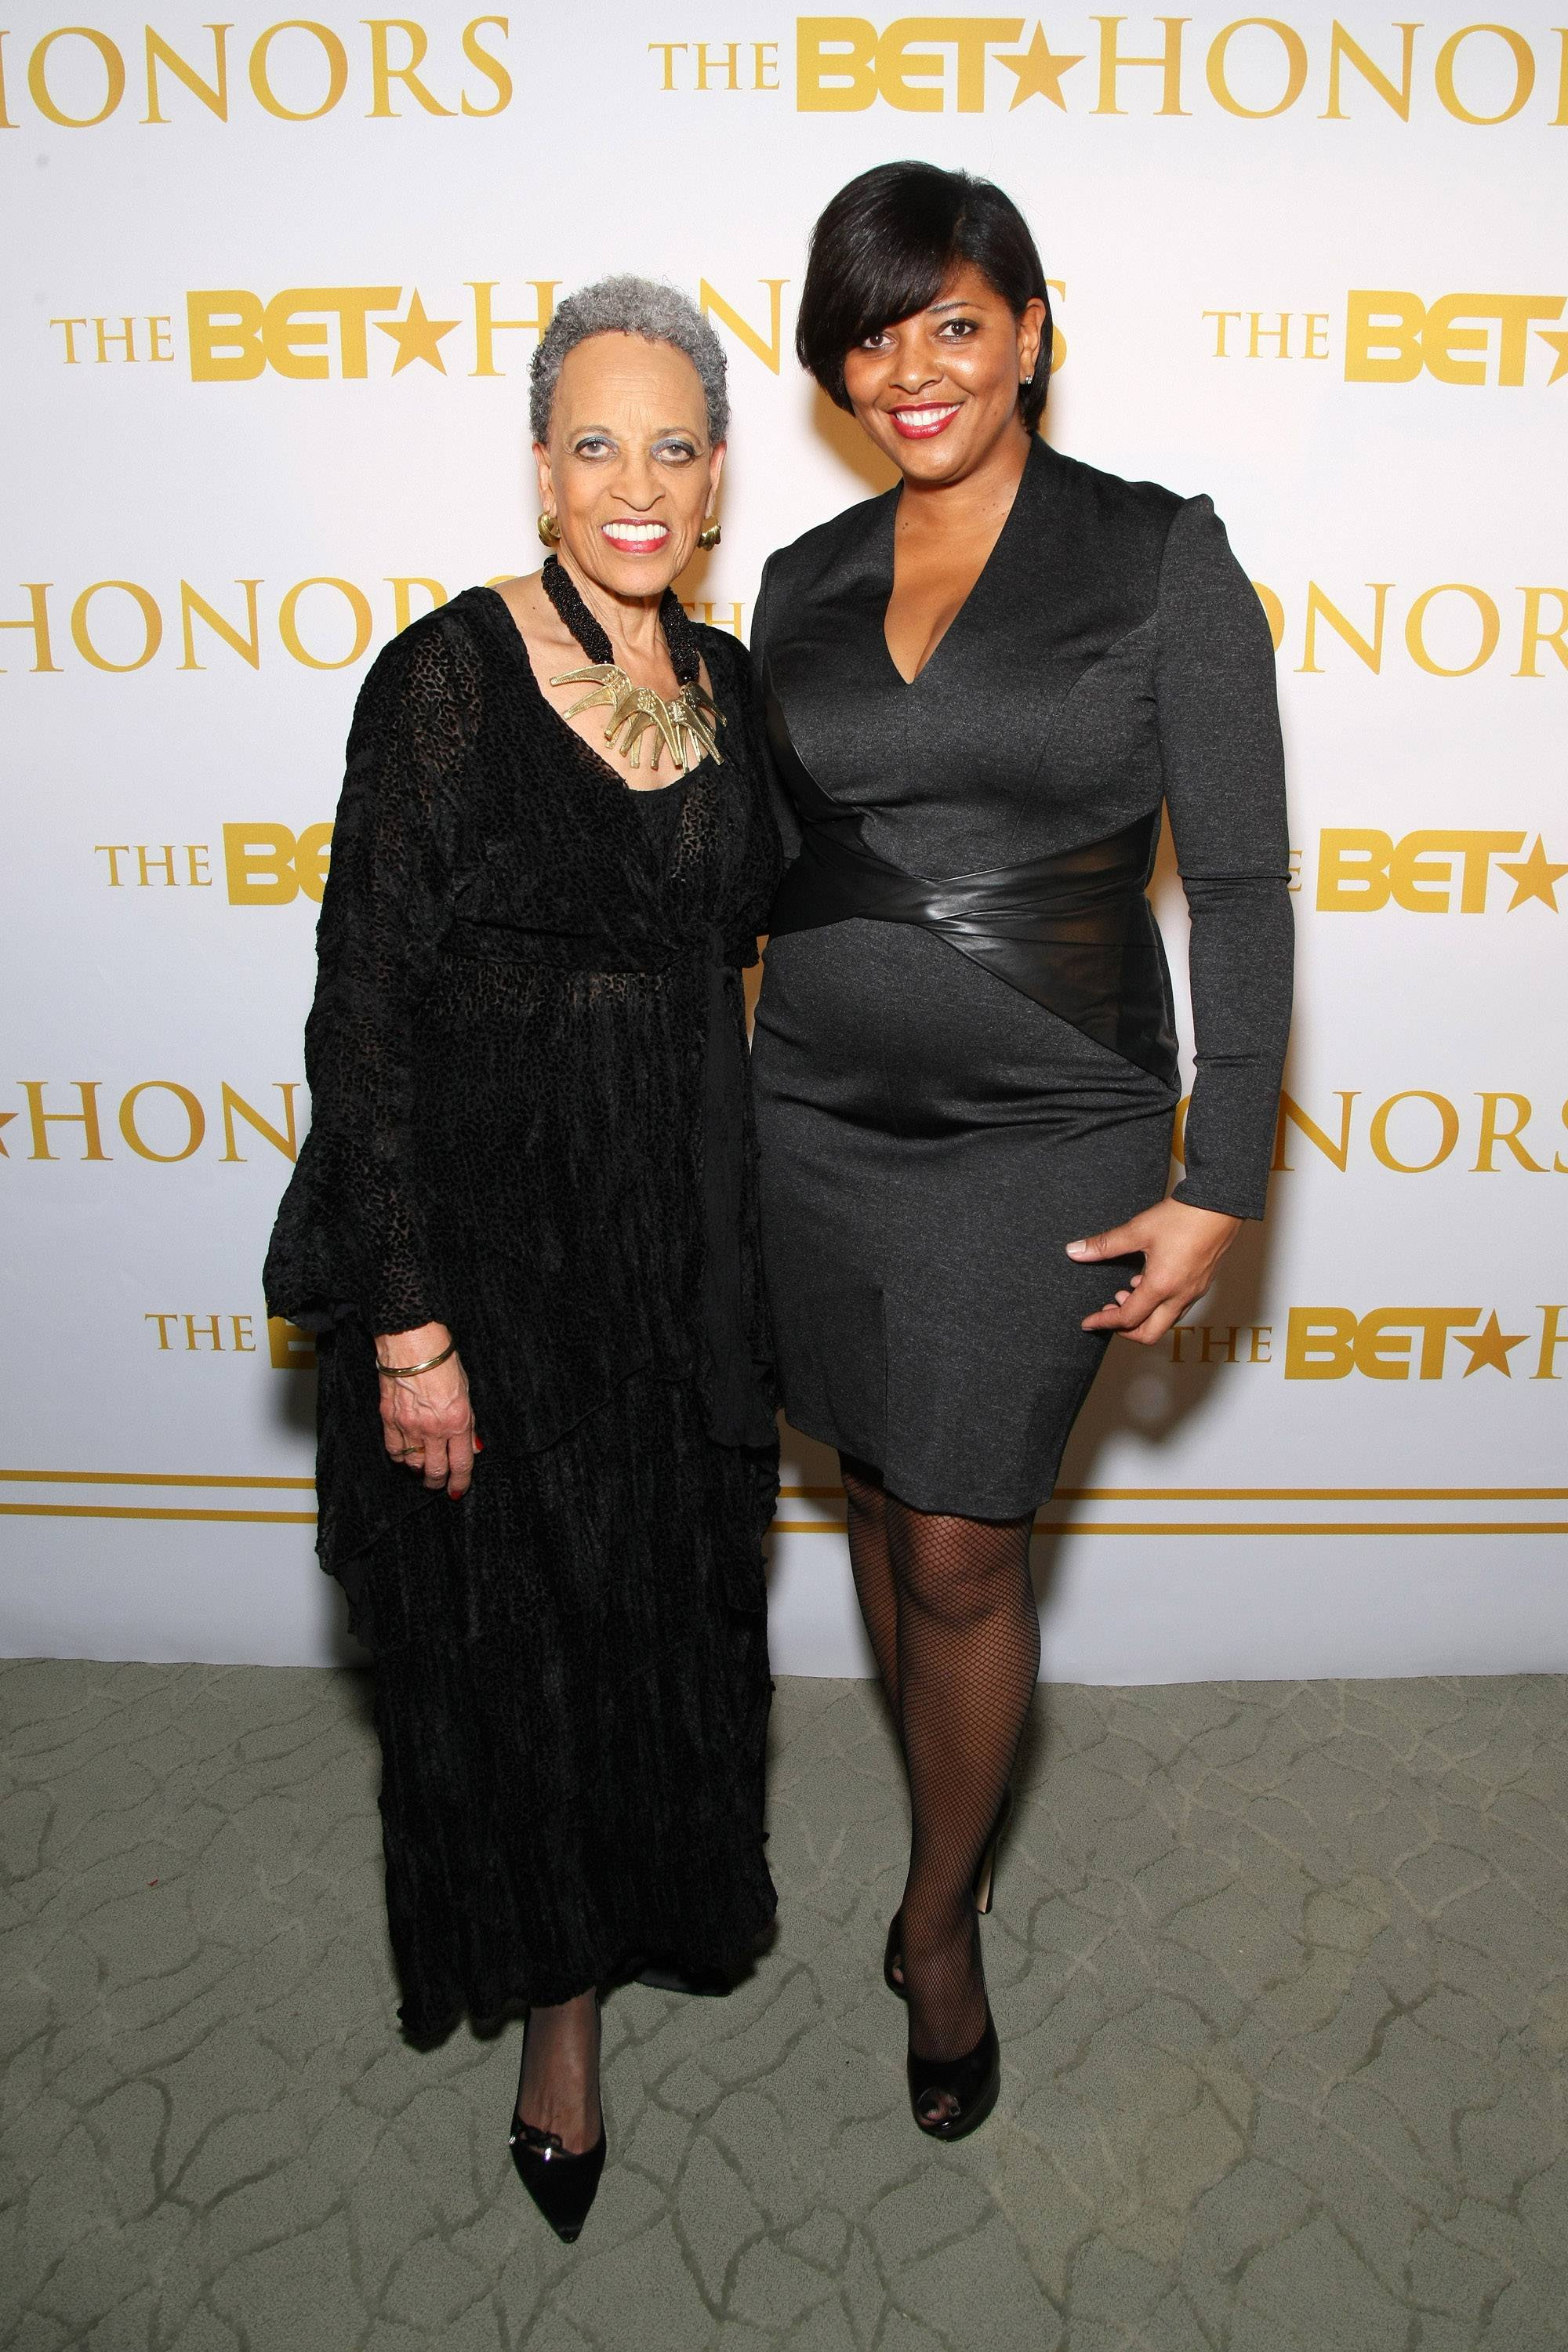 All Black Everything - Honoree Dr. Johnnetta B. Cole and BET executive Vicky Free stun in all black.